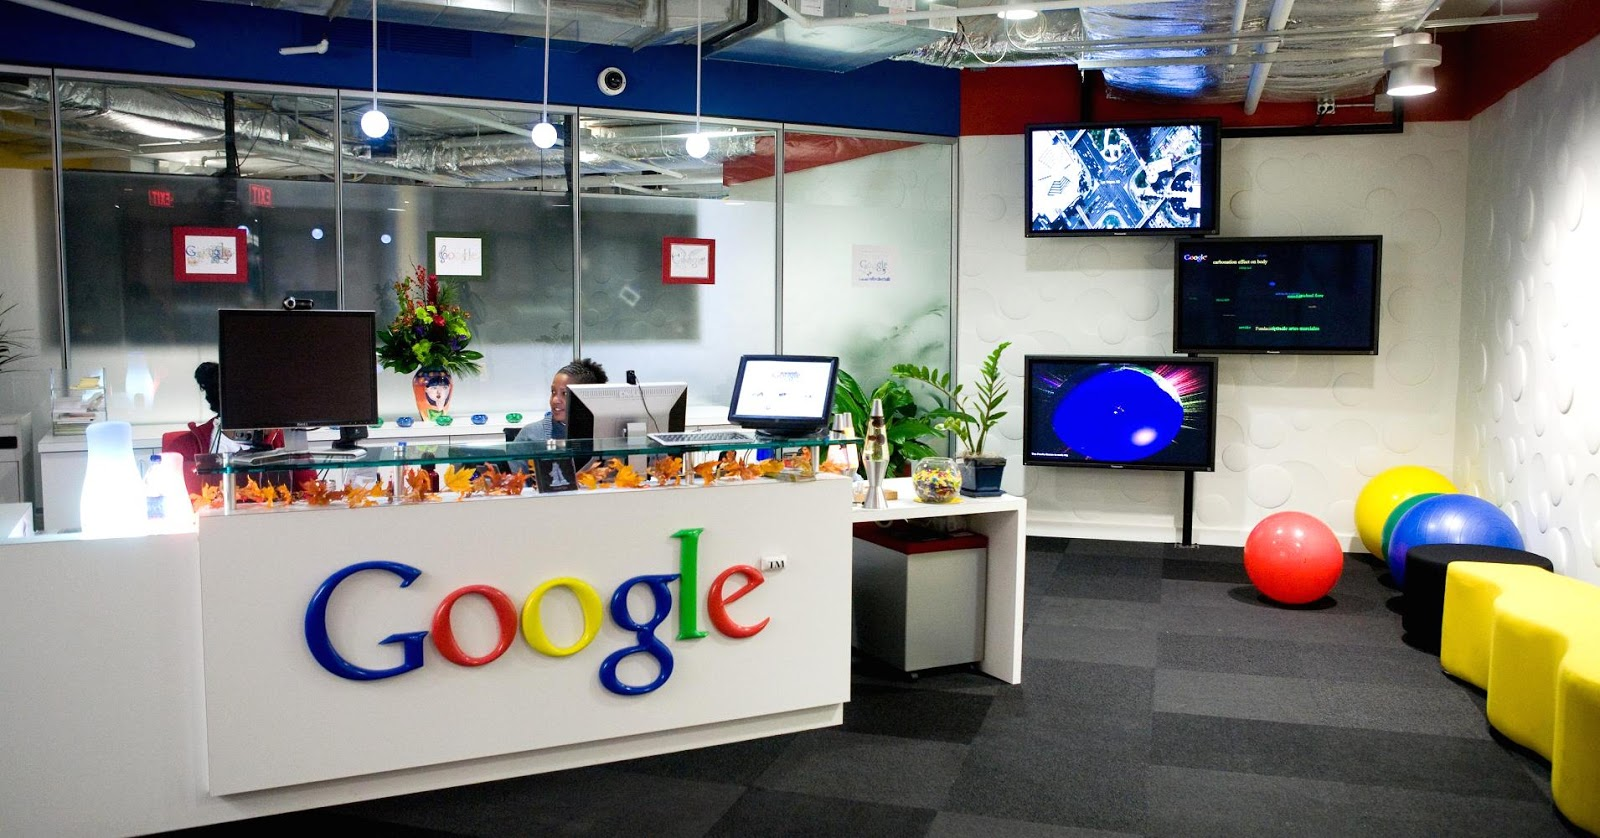 Biggest Myths About Google - Why Google Is The Best Place To Work